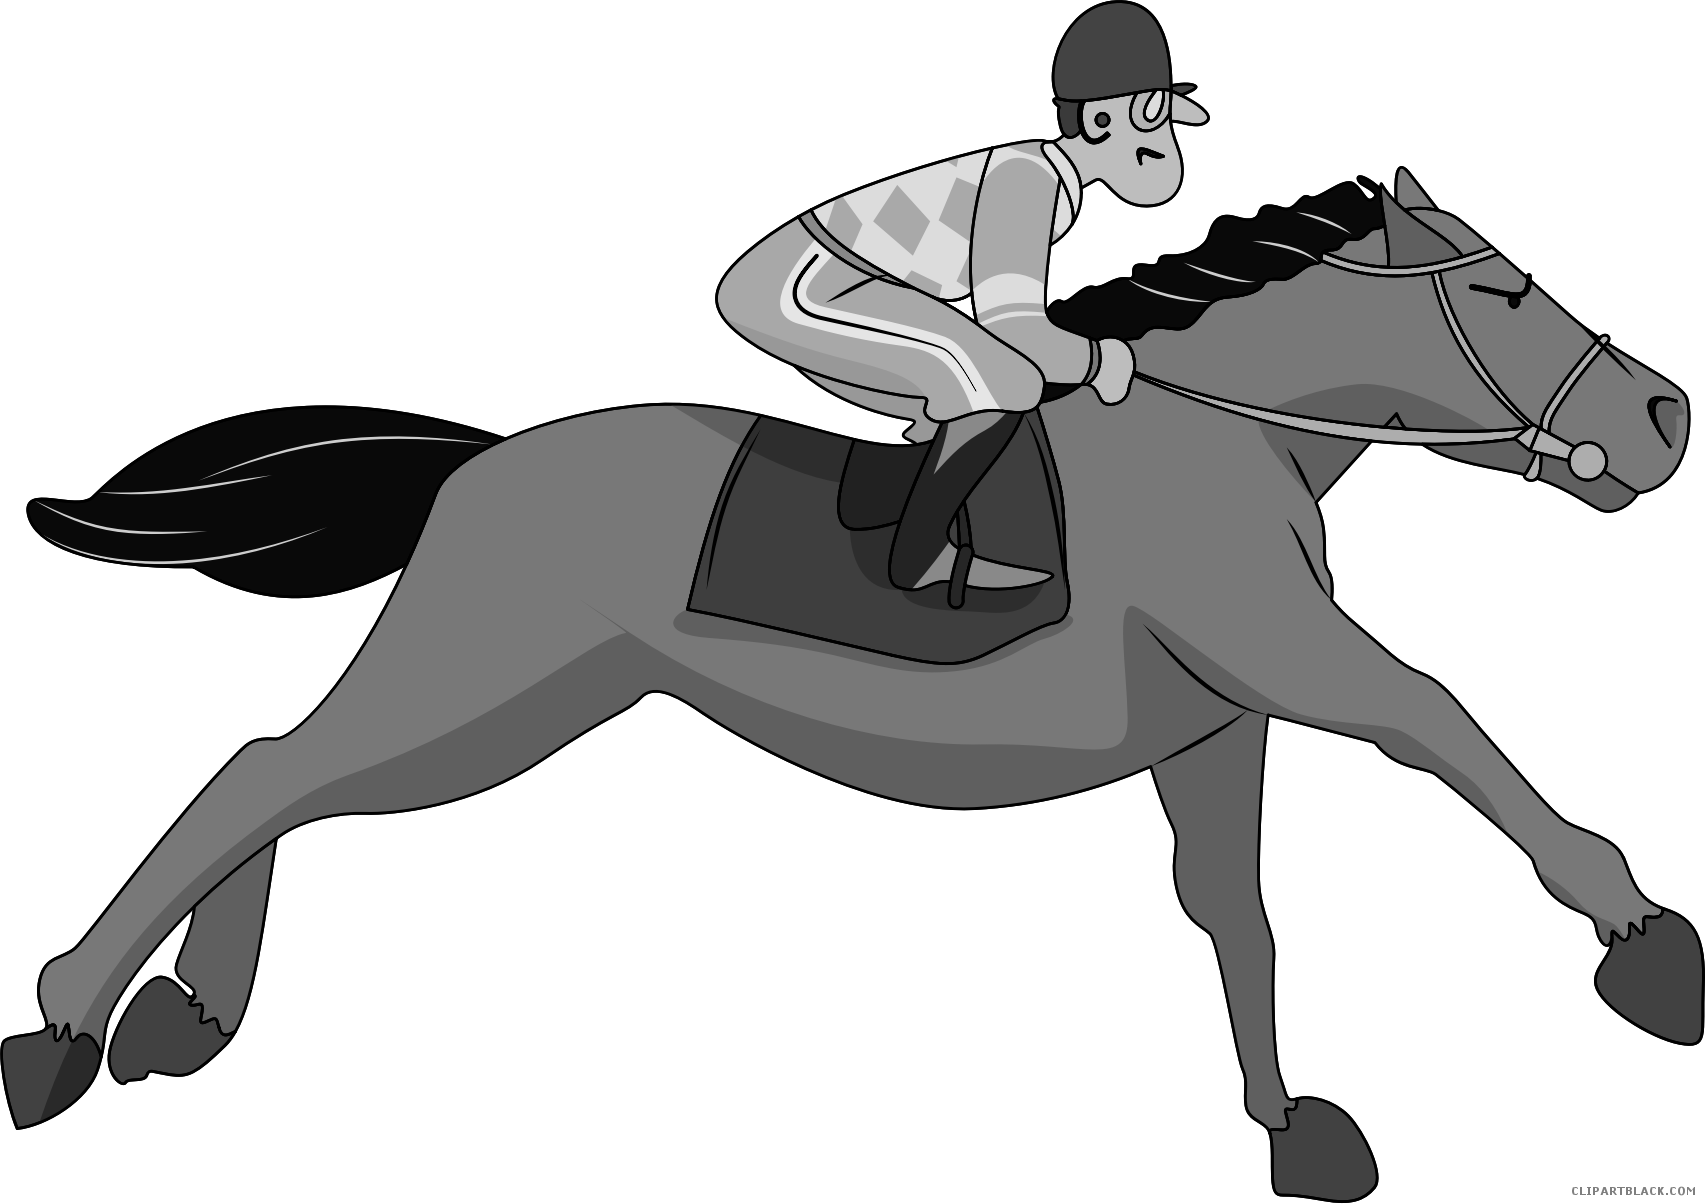 Galloping horse animal free. Horses clipart gallop